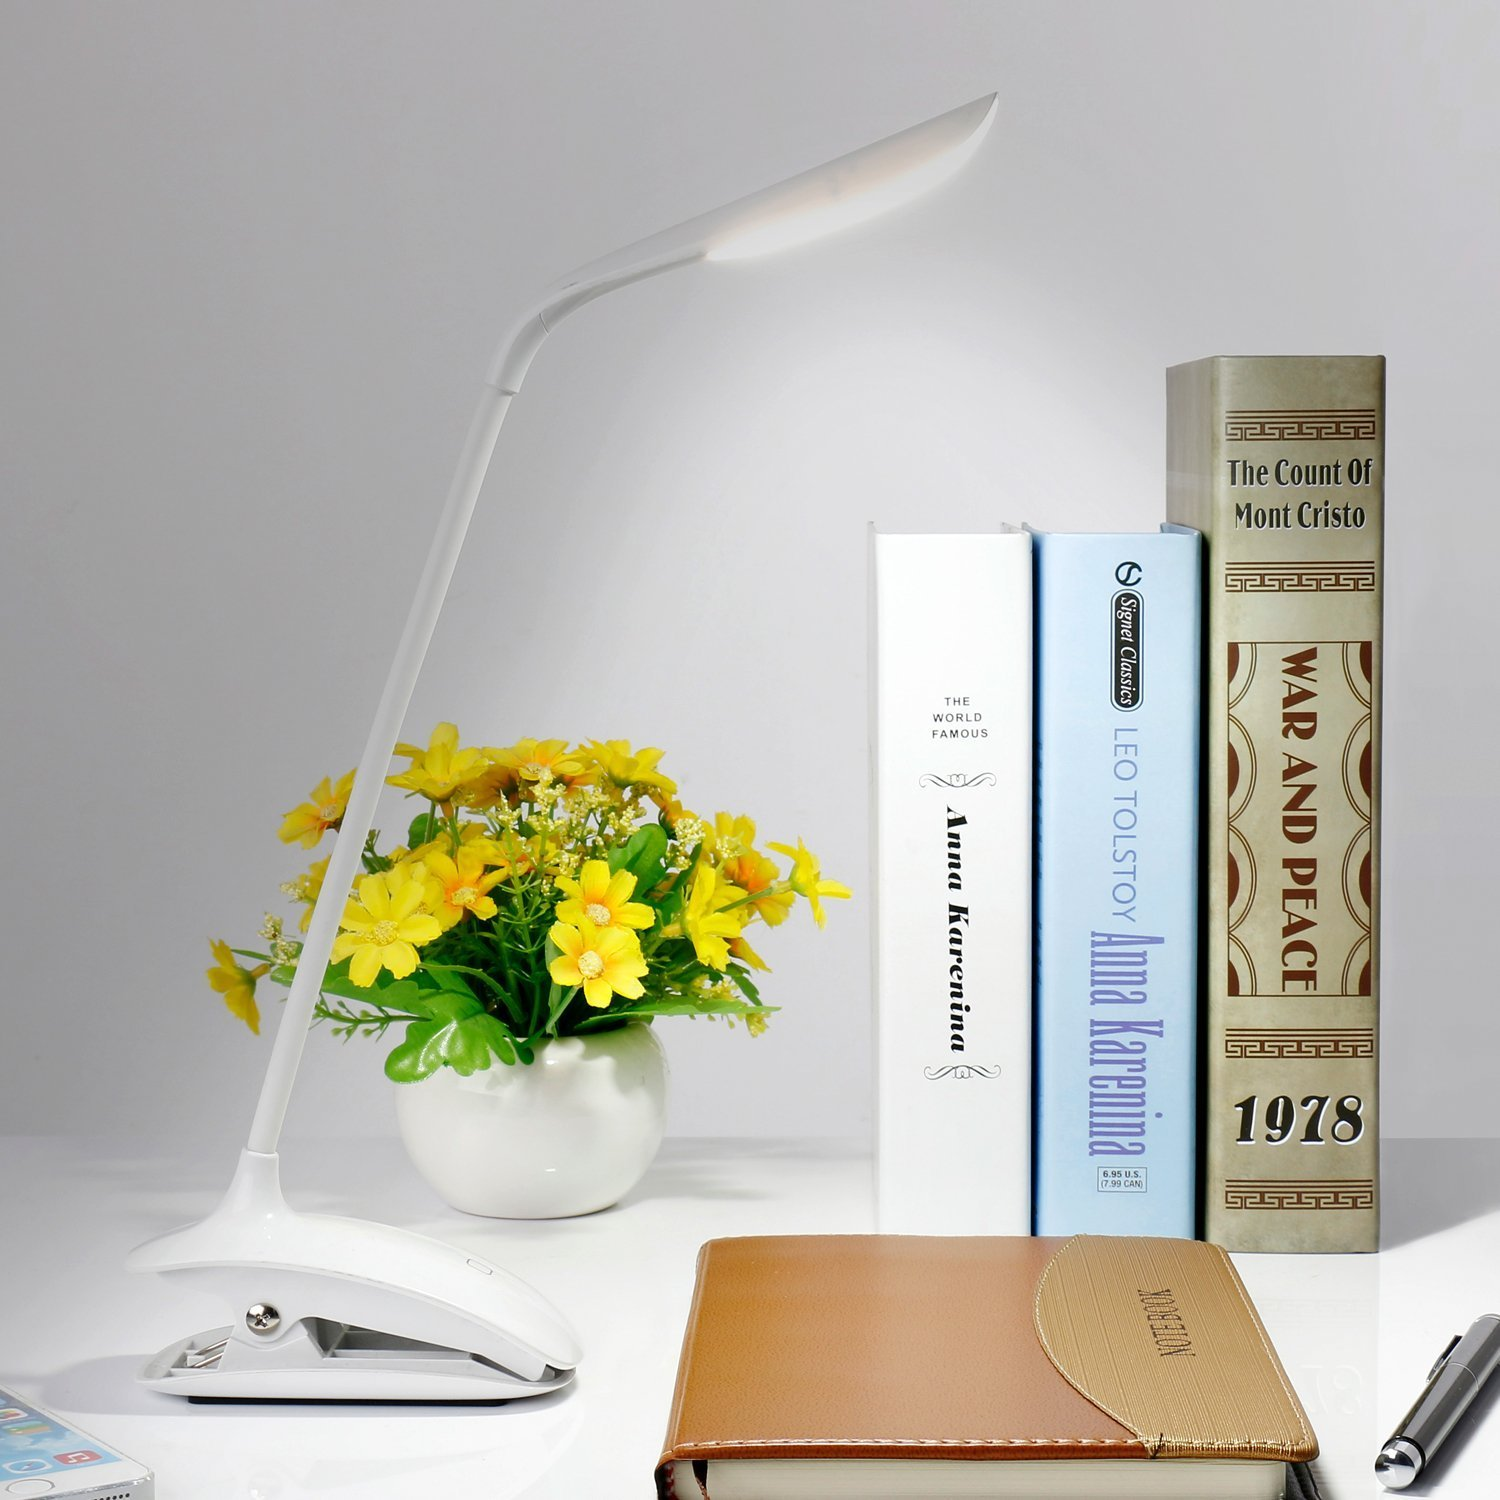 lamps target halogen ingenuity table top study office terrific desk light led small lamp reading